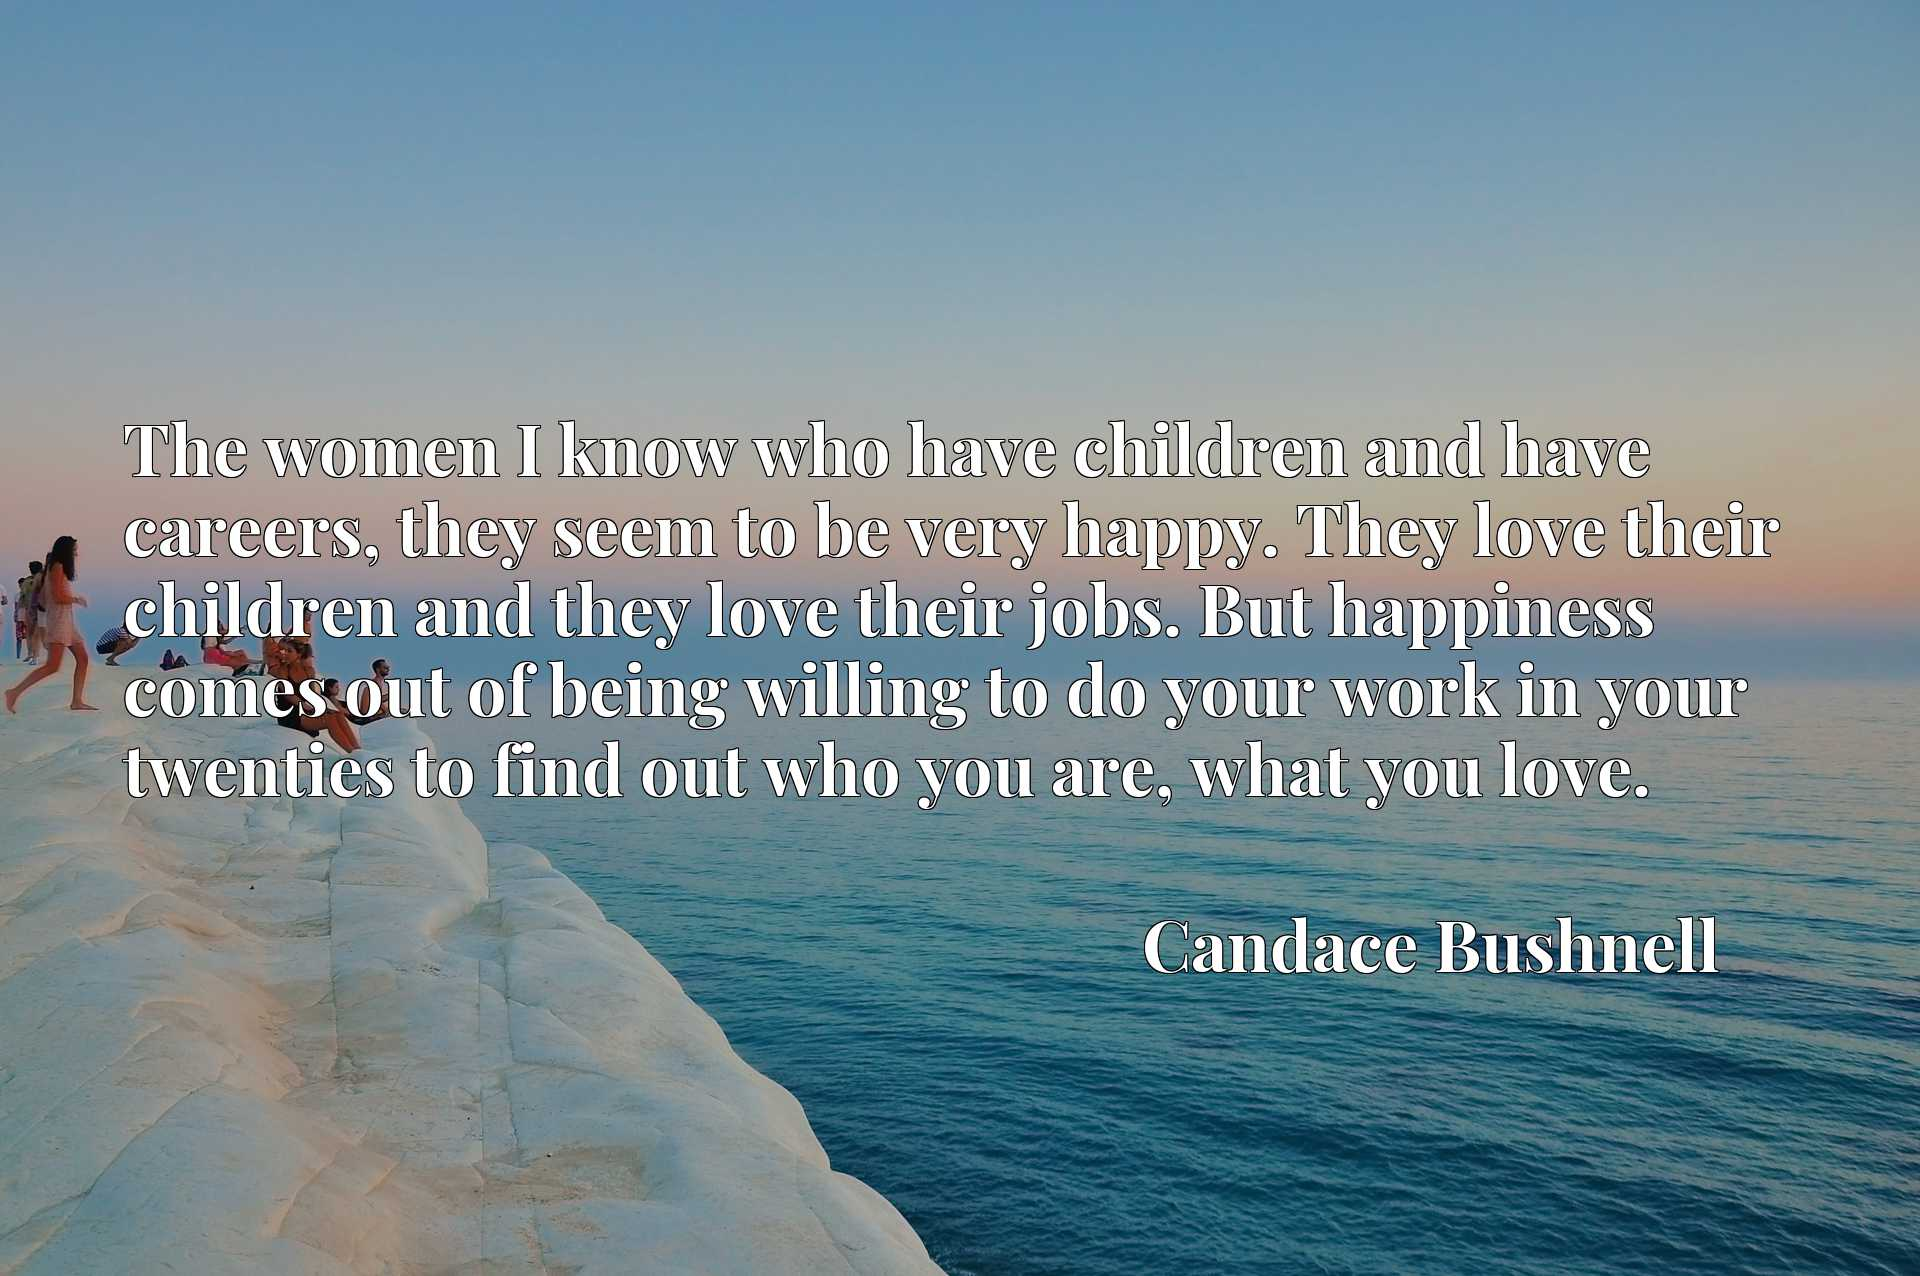 The women I know who have children and have careers, they seem to be very happy. They love their children and they love their jobs. But happiness comes out of being willing to do your work in your twenties to find out who you are, what you love.